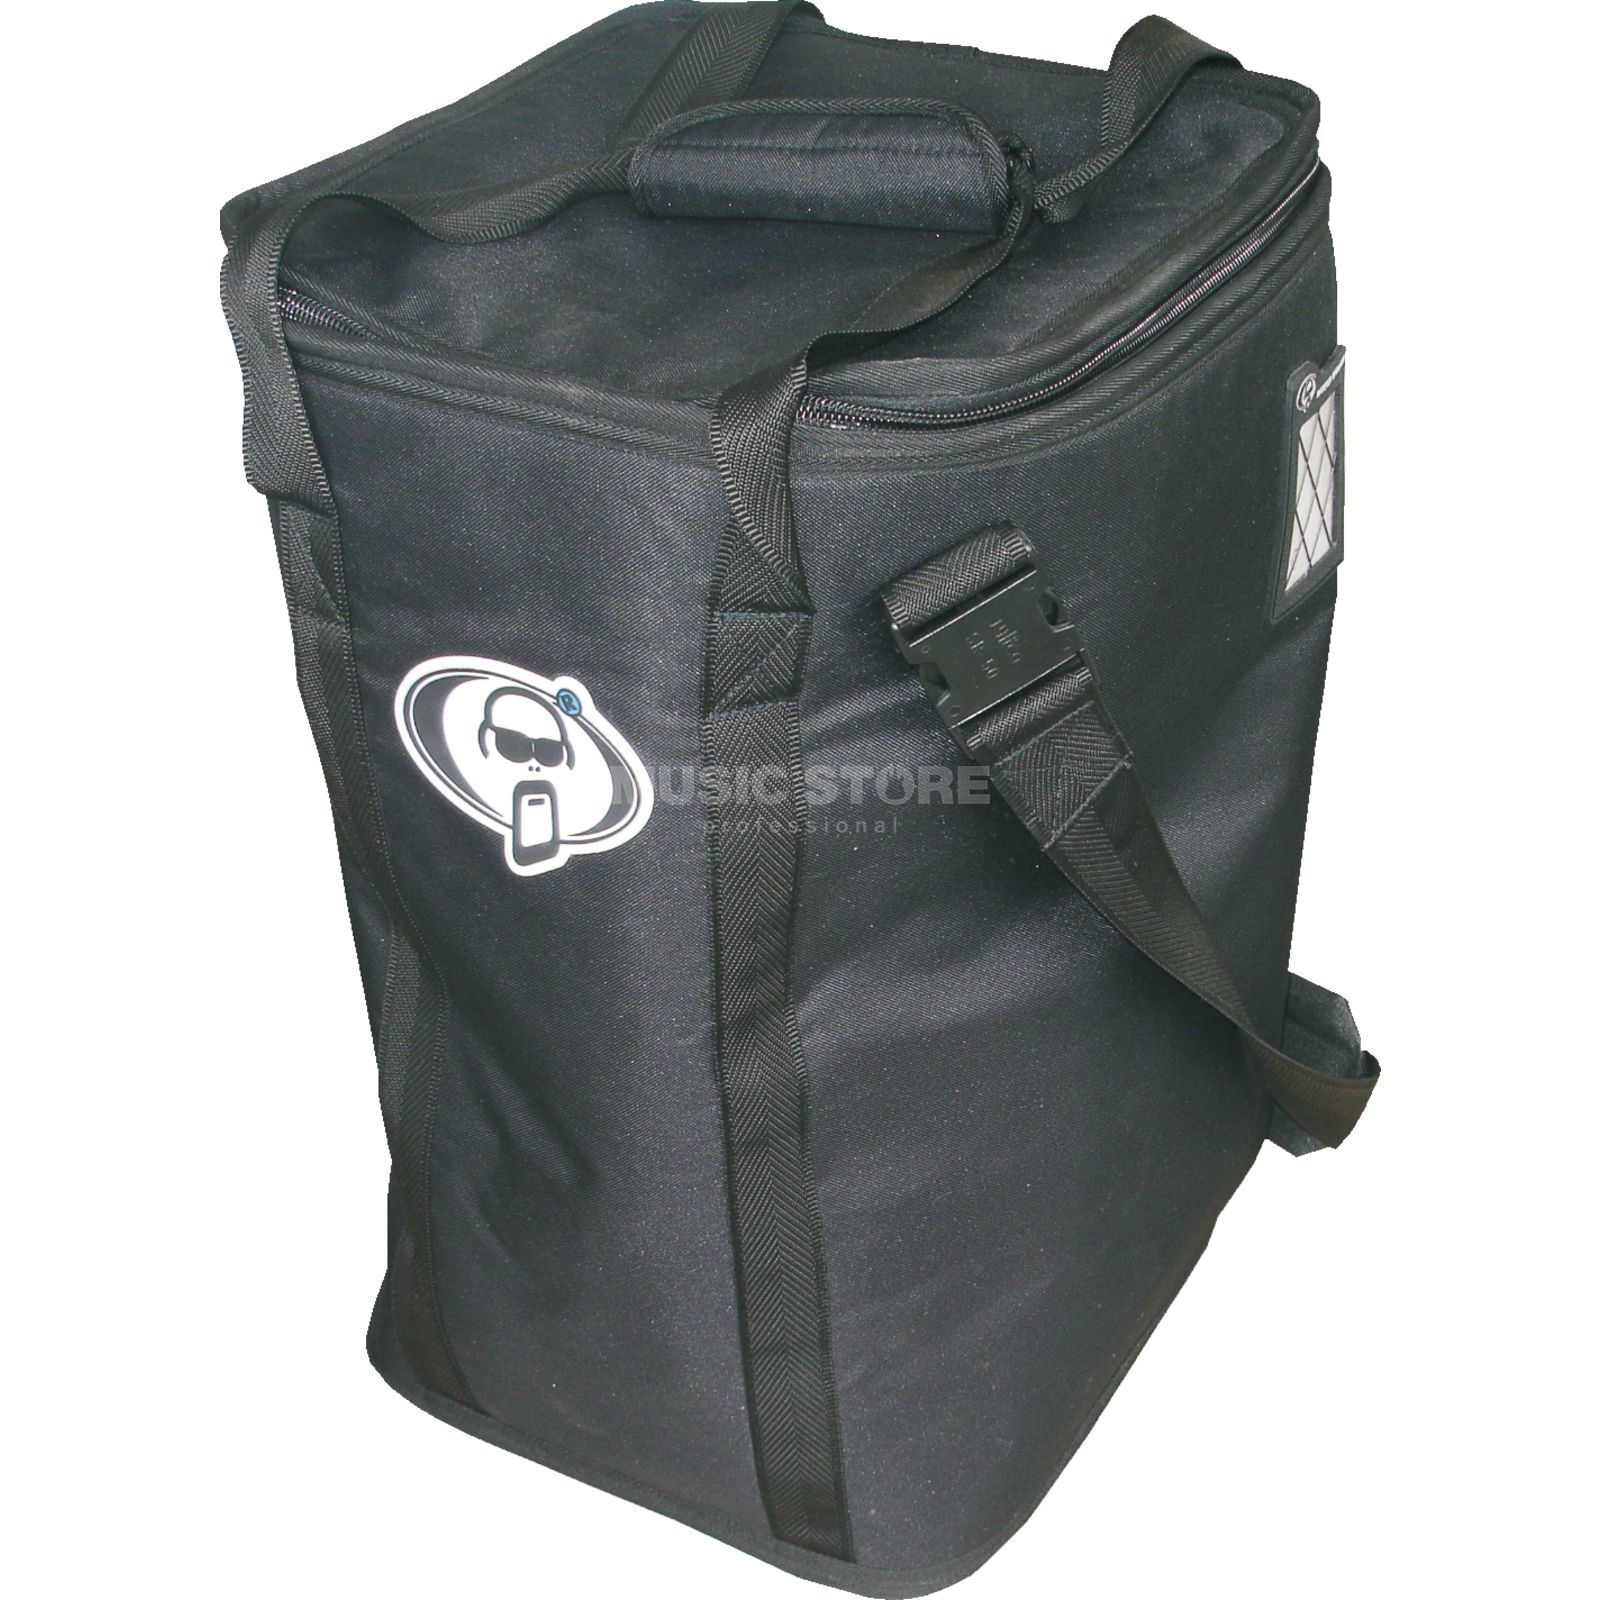 Protection Racket Cajon Bag CAJ3 Rucksack, 52 x 30½ x 30½ cm Produktbild